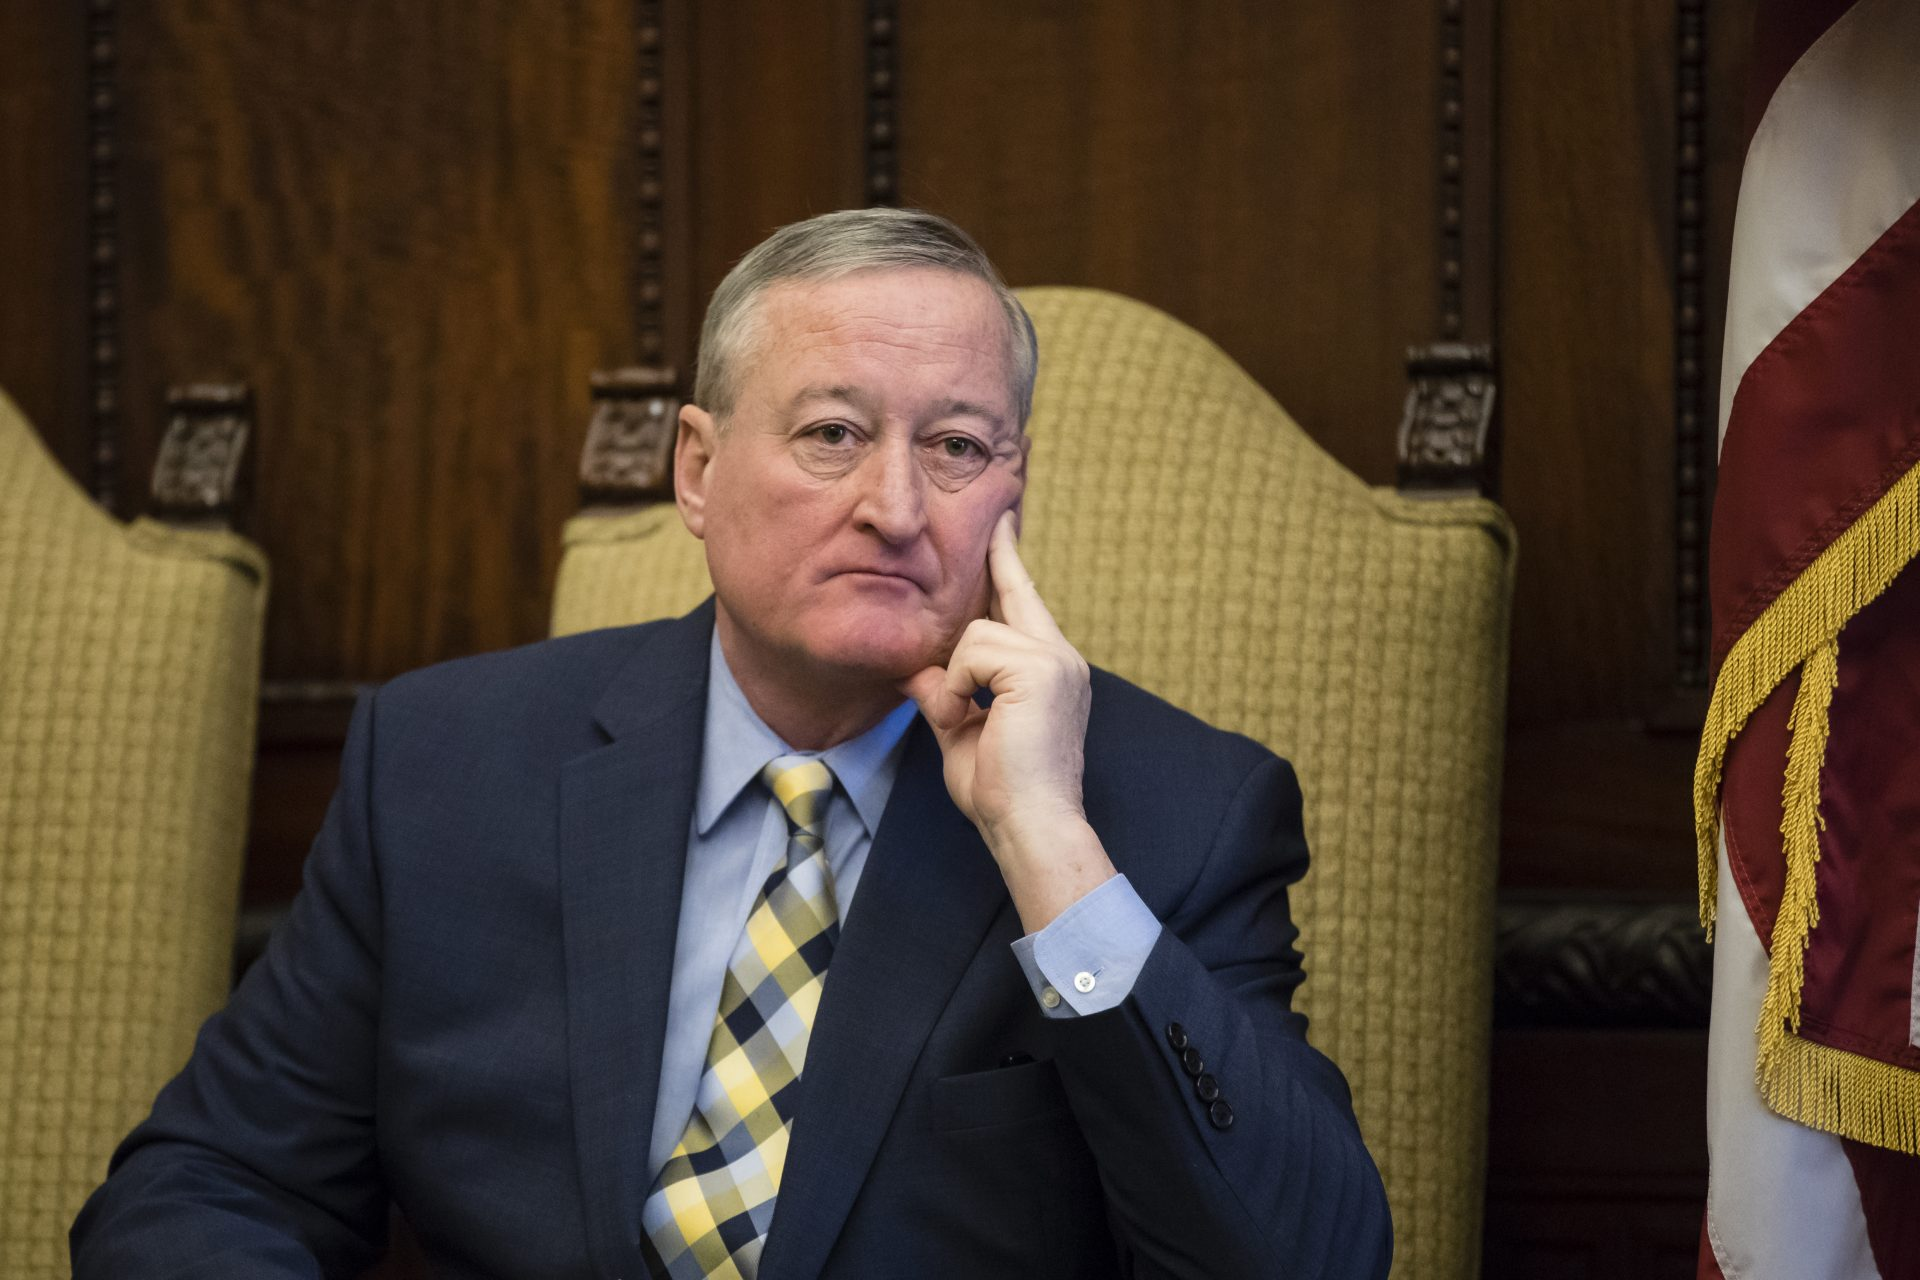 Philadelphia Mayor Jim Kenney listens during a news conference at City Hall in Philadelphia, Thursday, Jan. 17, 2019.